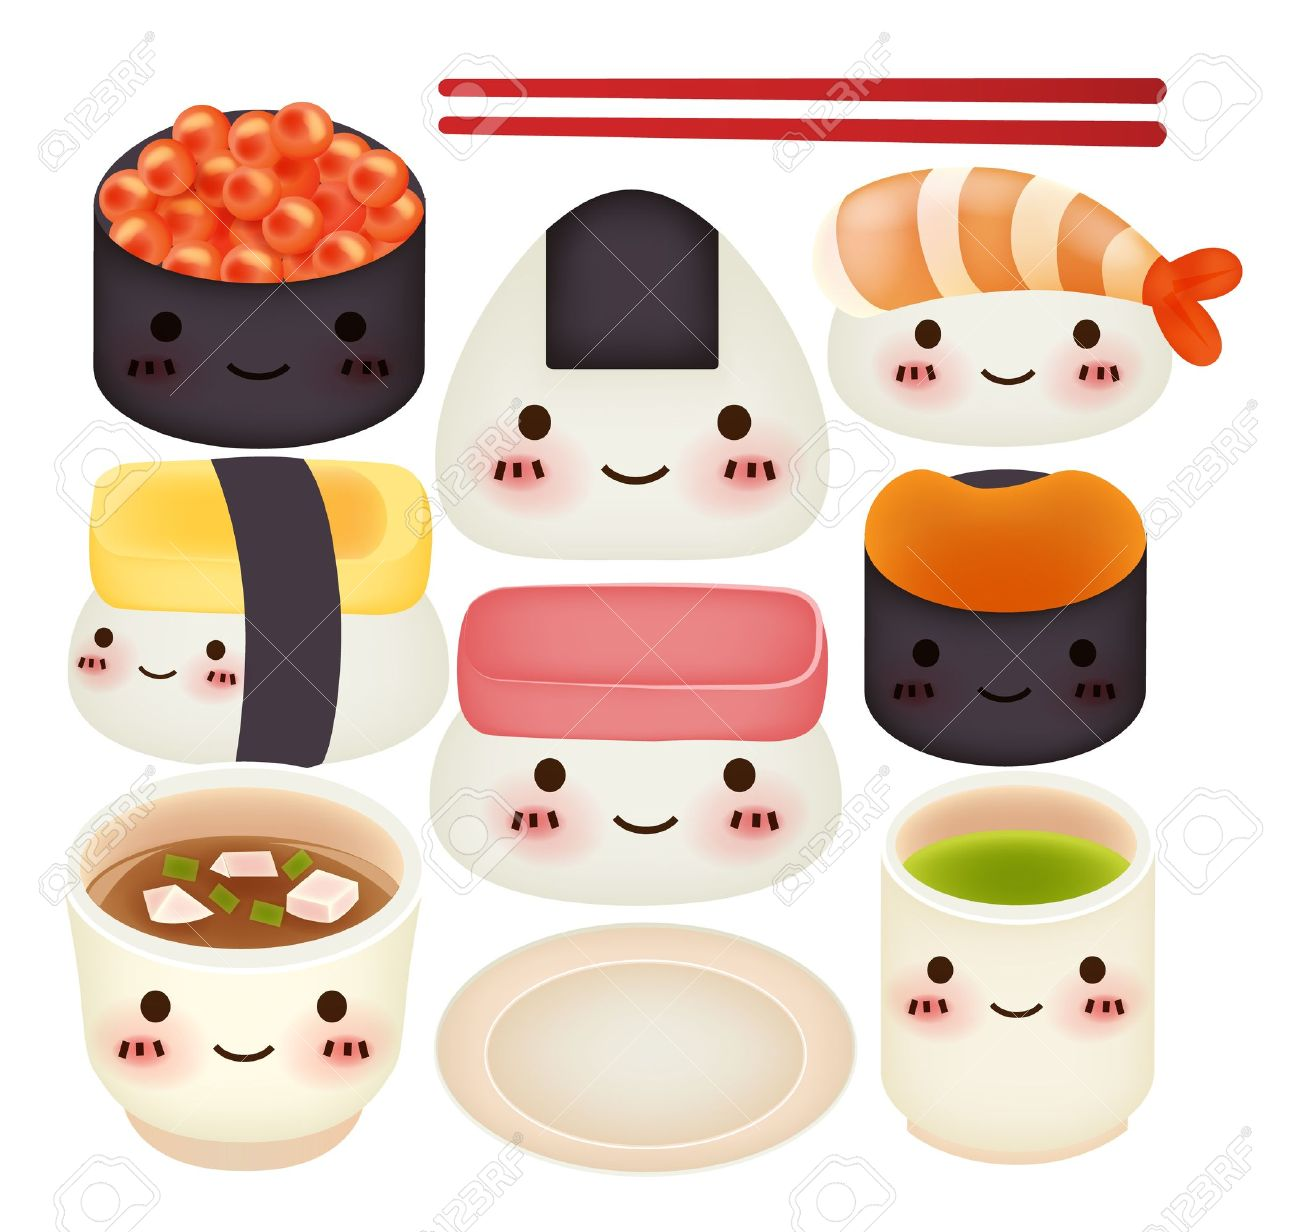 2,935 Maki Stock Vector Illustration And Royalty Free Maki Clipart.